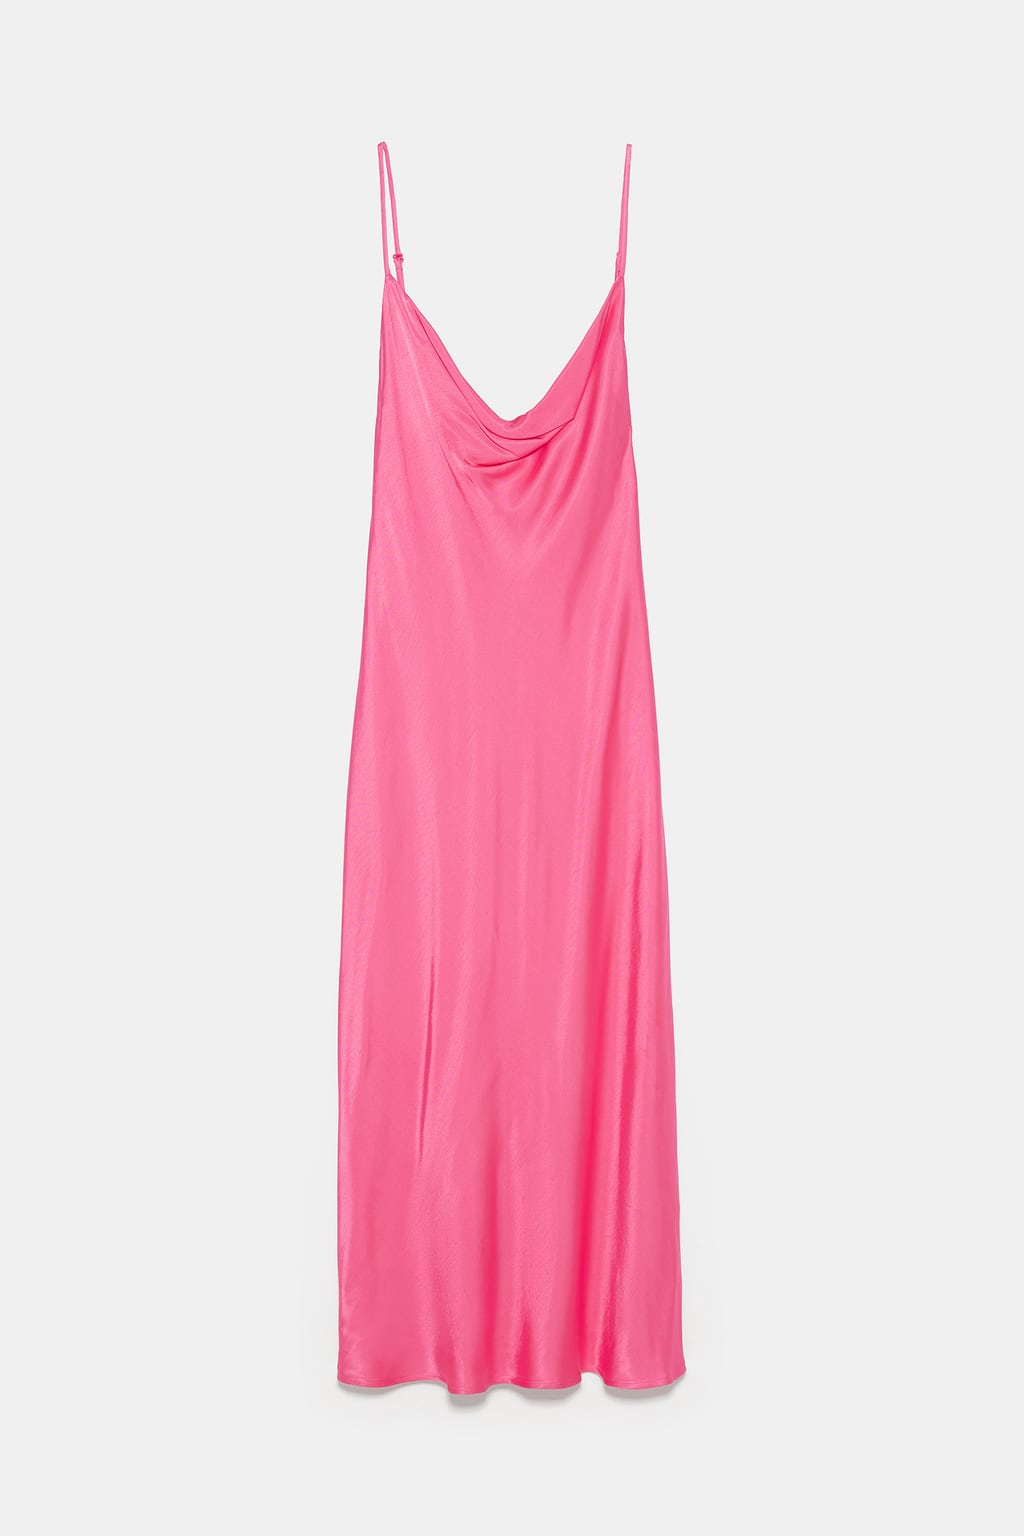 Lingerie Dress Zara -